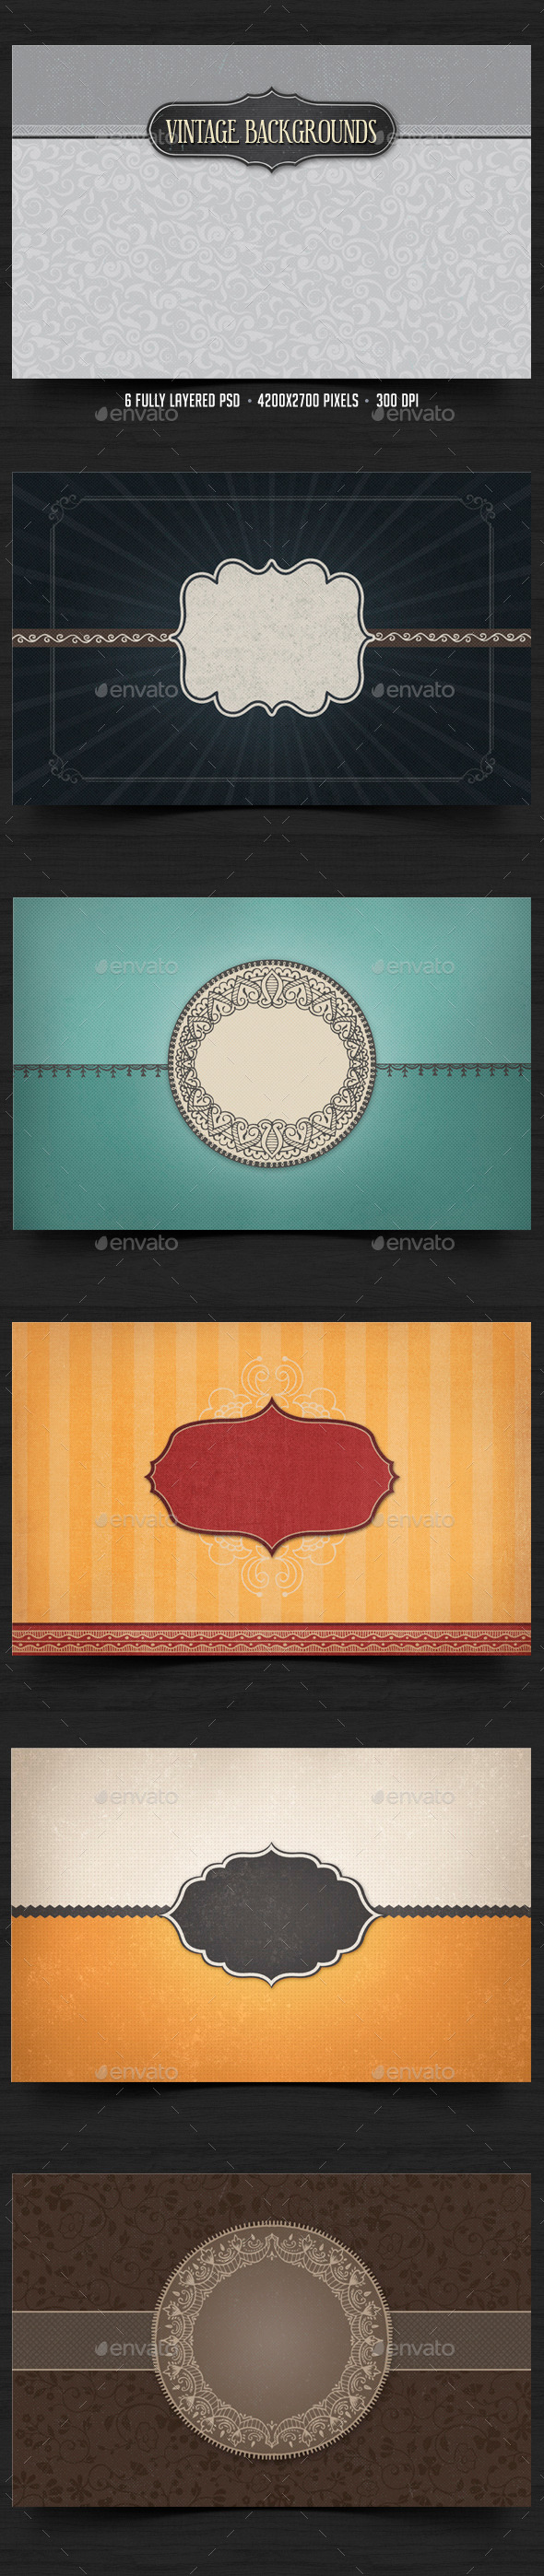 Vintage Backgrounds 4 - Backgrounds Graphics